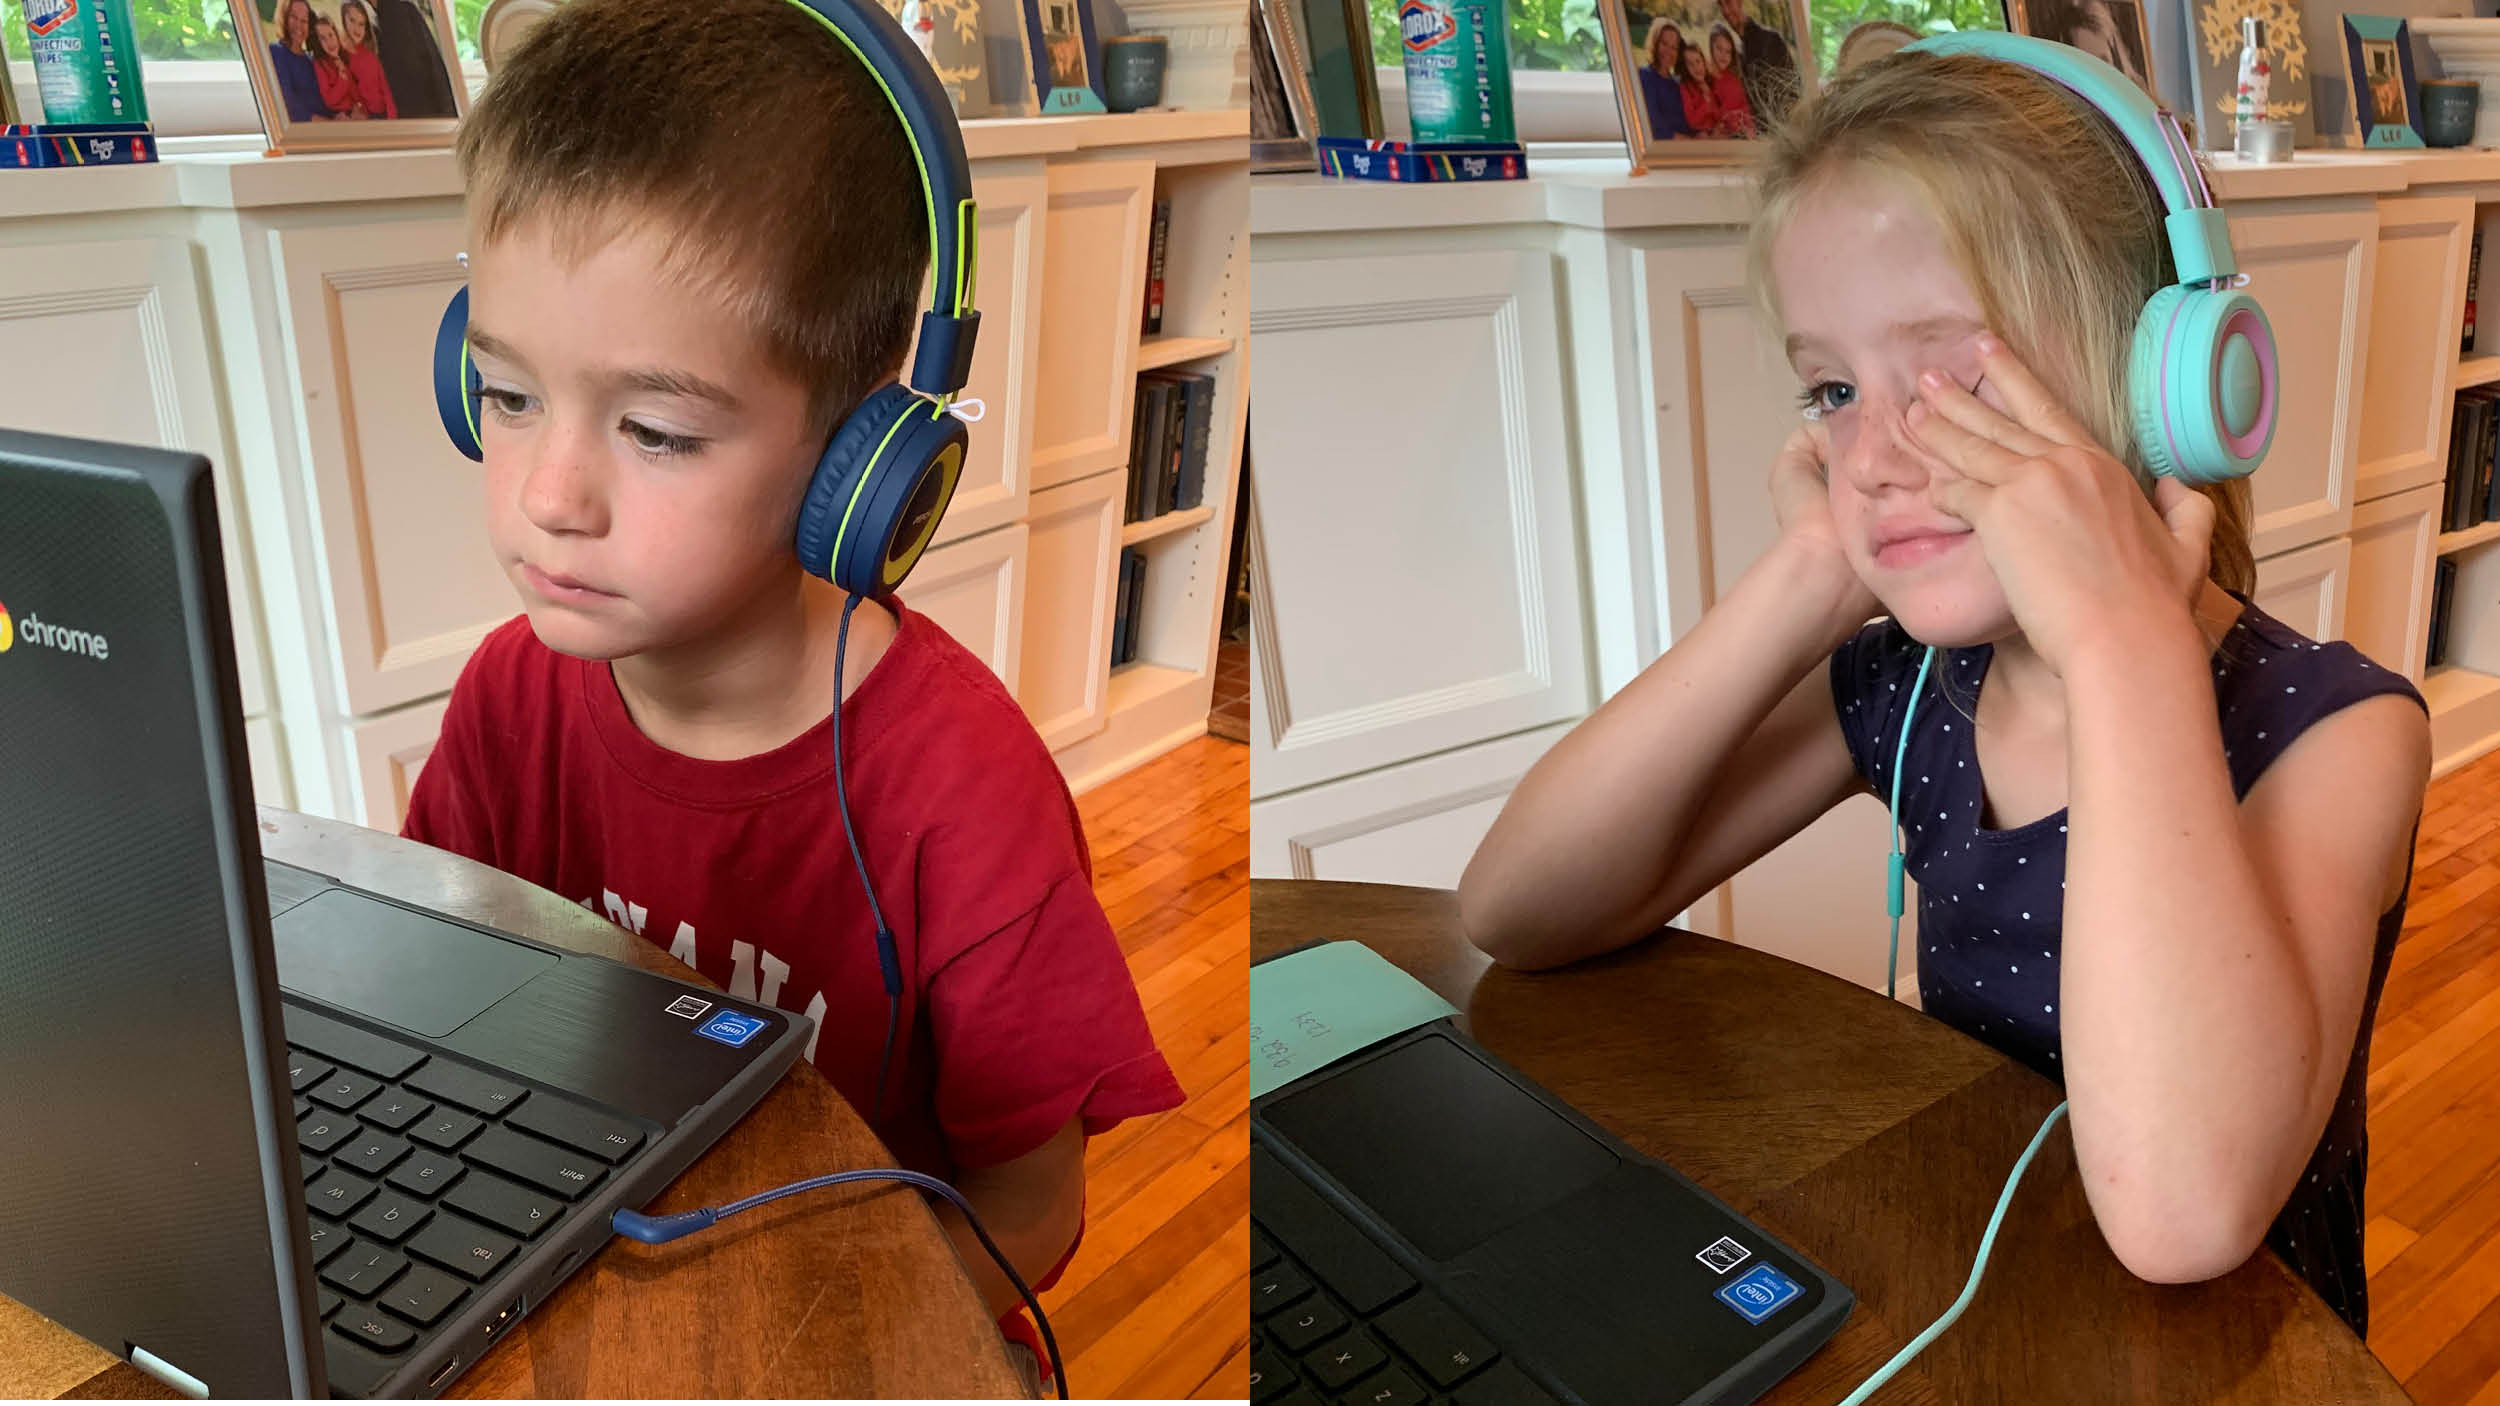 Two children attending Zoom sessions on laptops. They have headphones on and are staring at a screen